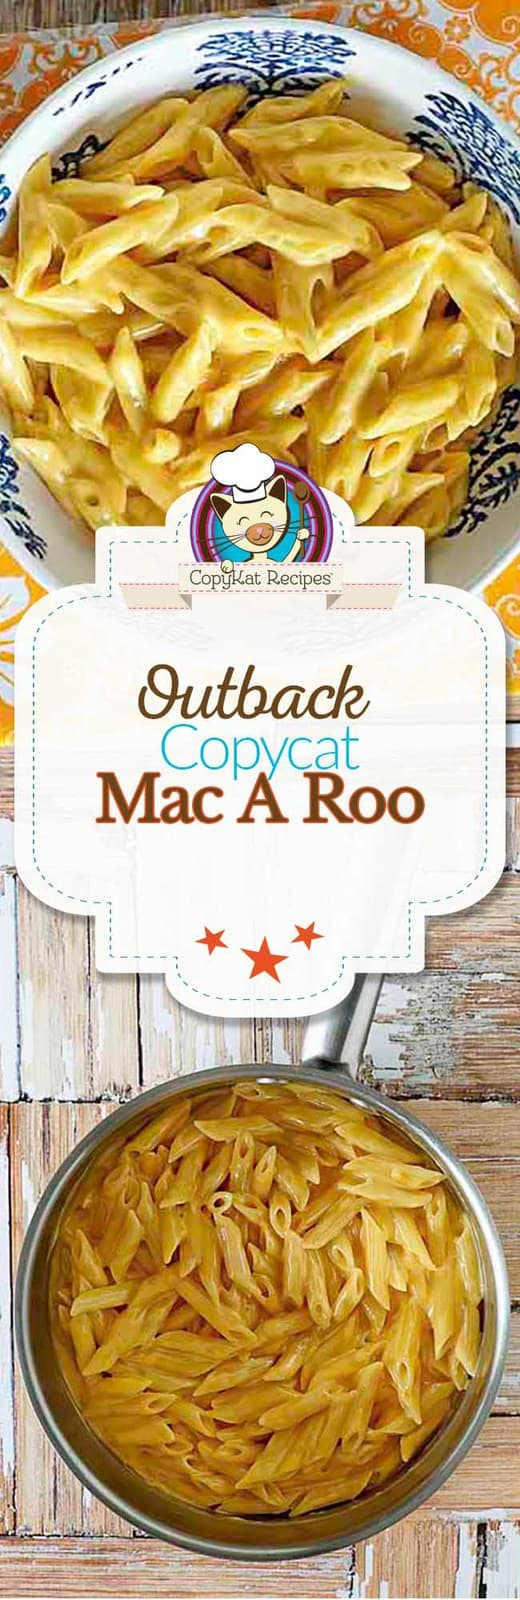 You can recreate the Outback Steakhouse Mac A Roo with this copycat recipe.